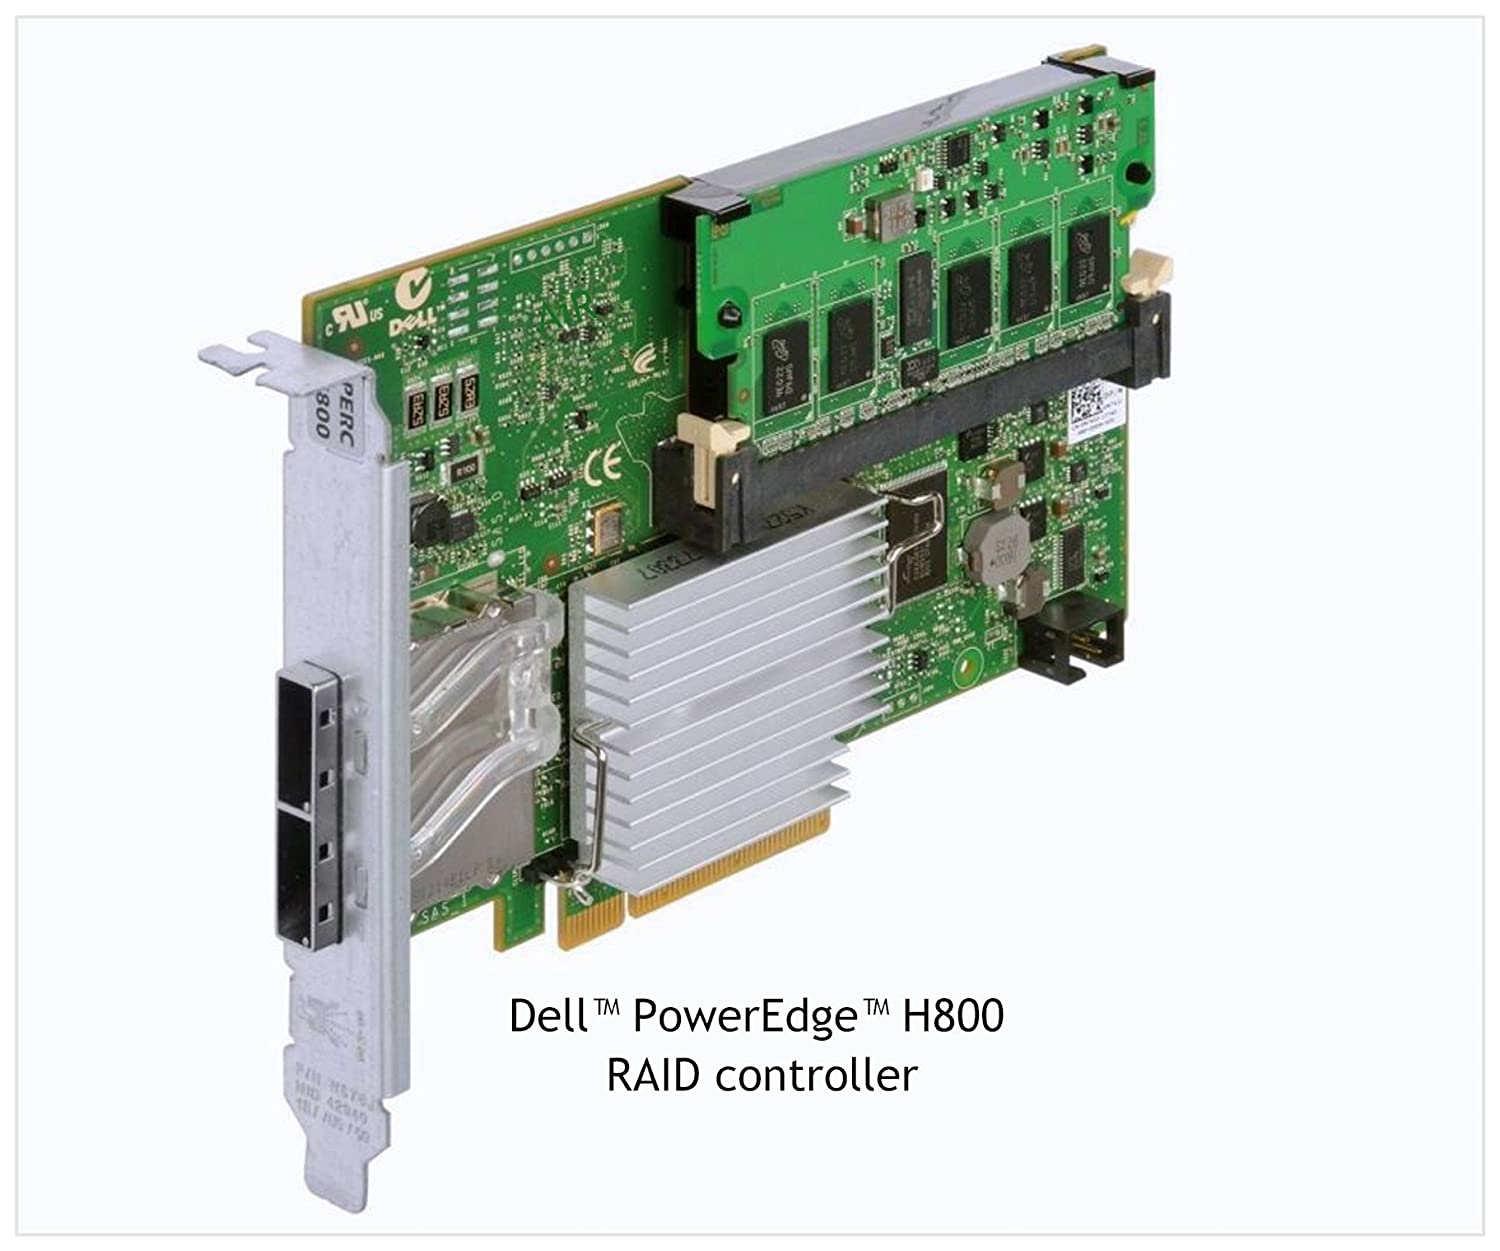 PERC H800 RAID Controller Card for Dell PowerEdge and PowerVault storages with 2 External ports supports SAS 2.0 6Gb/s and x8 PCIe 2.0 slot P/N 342-1193